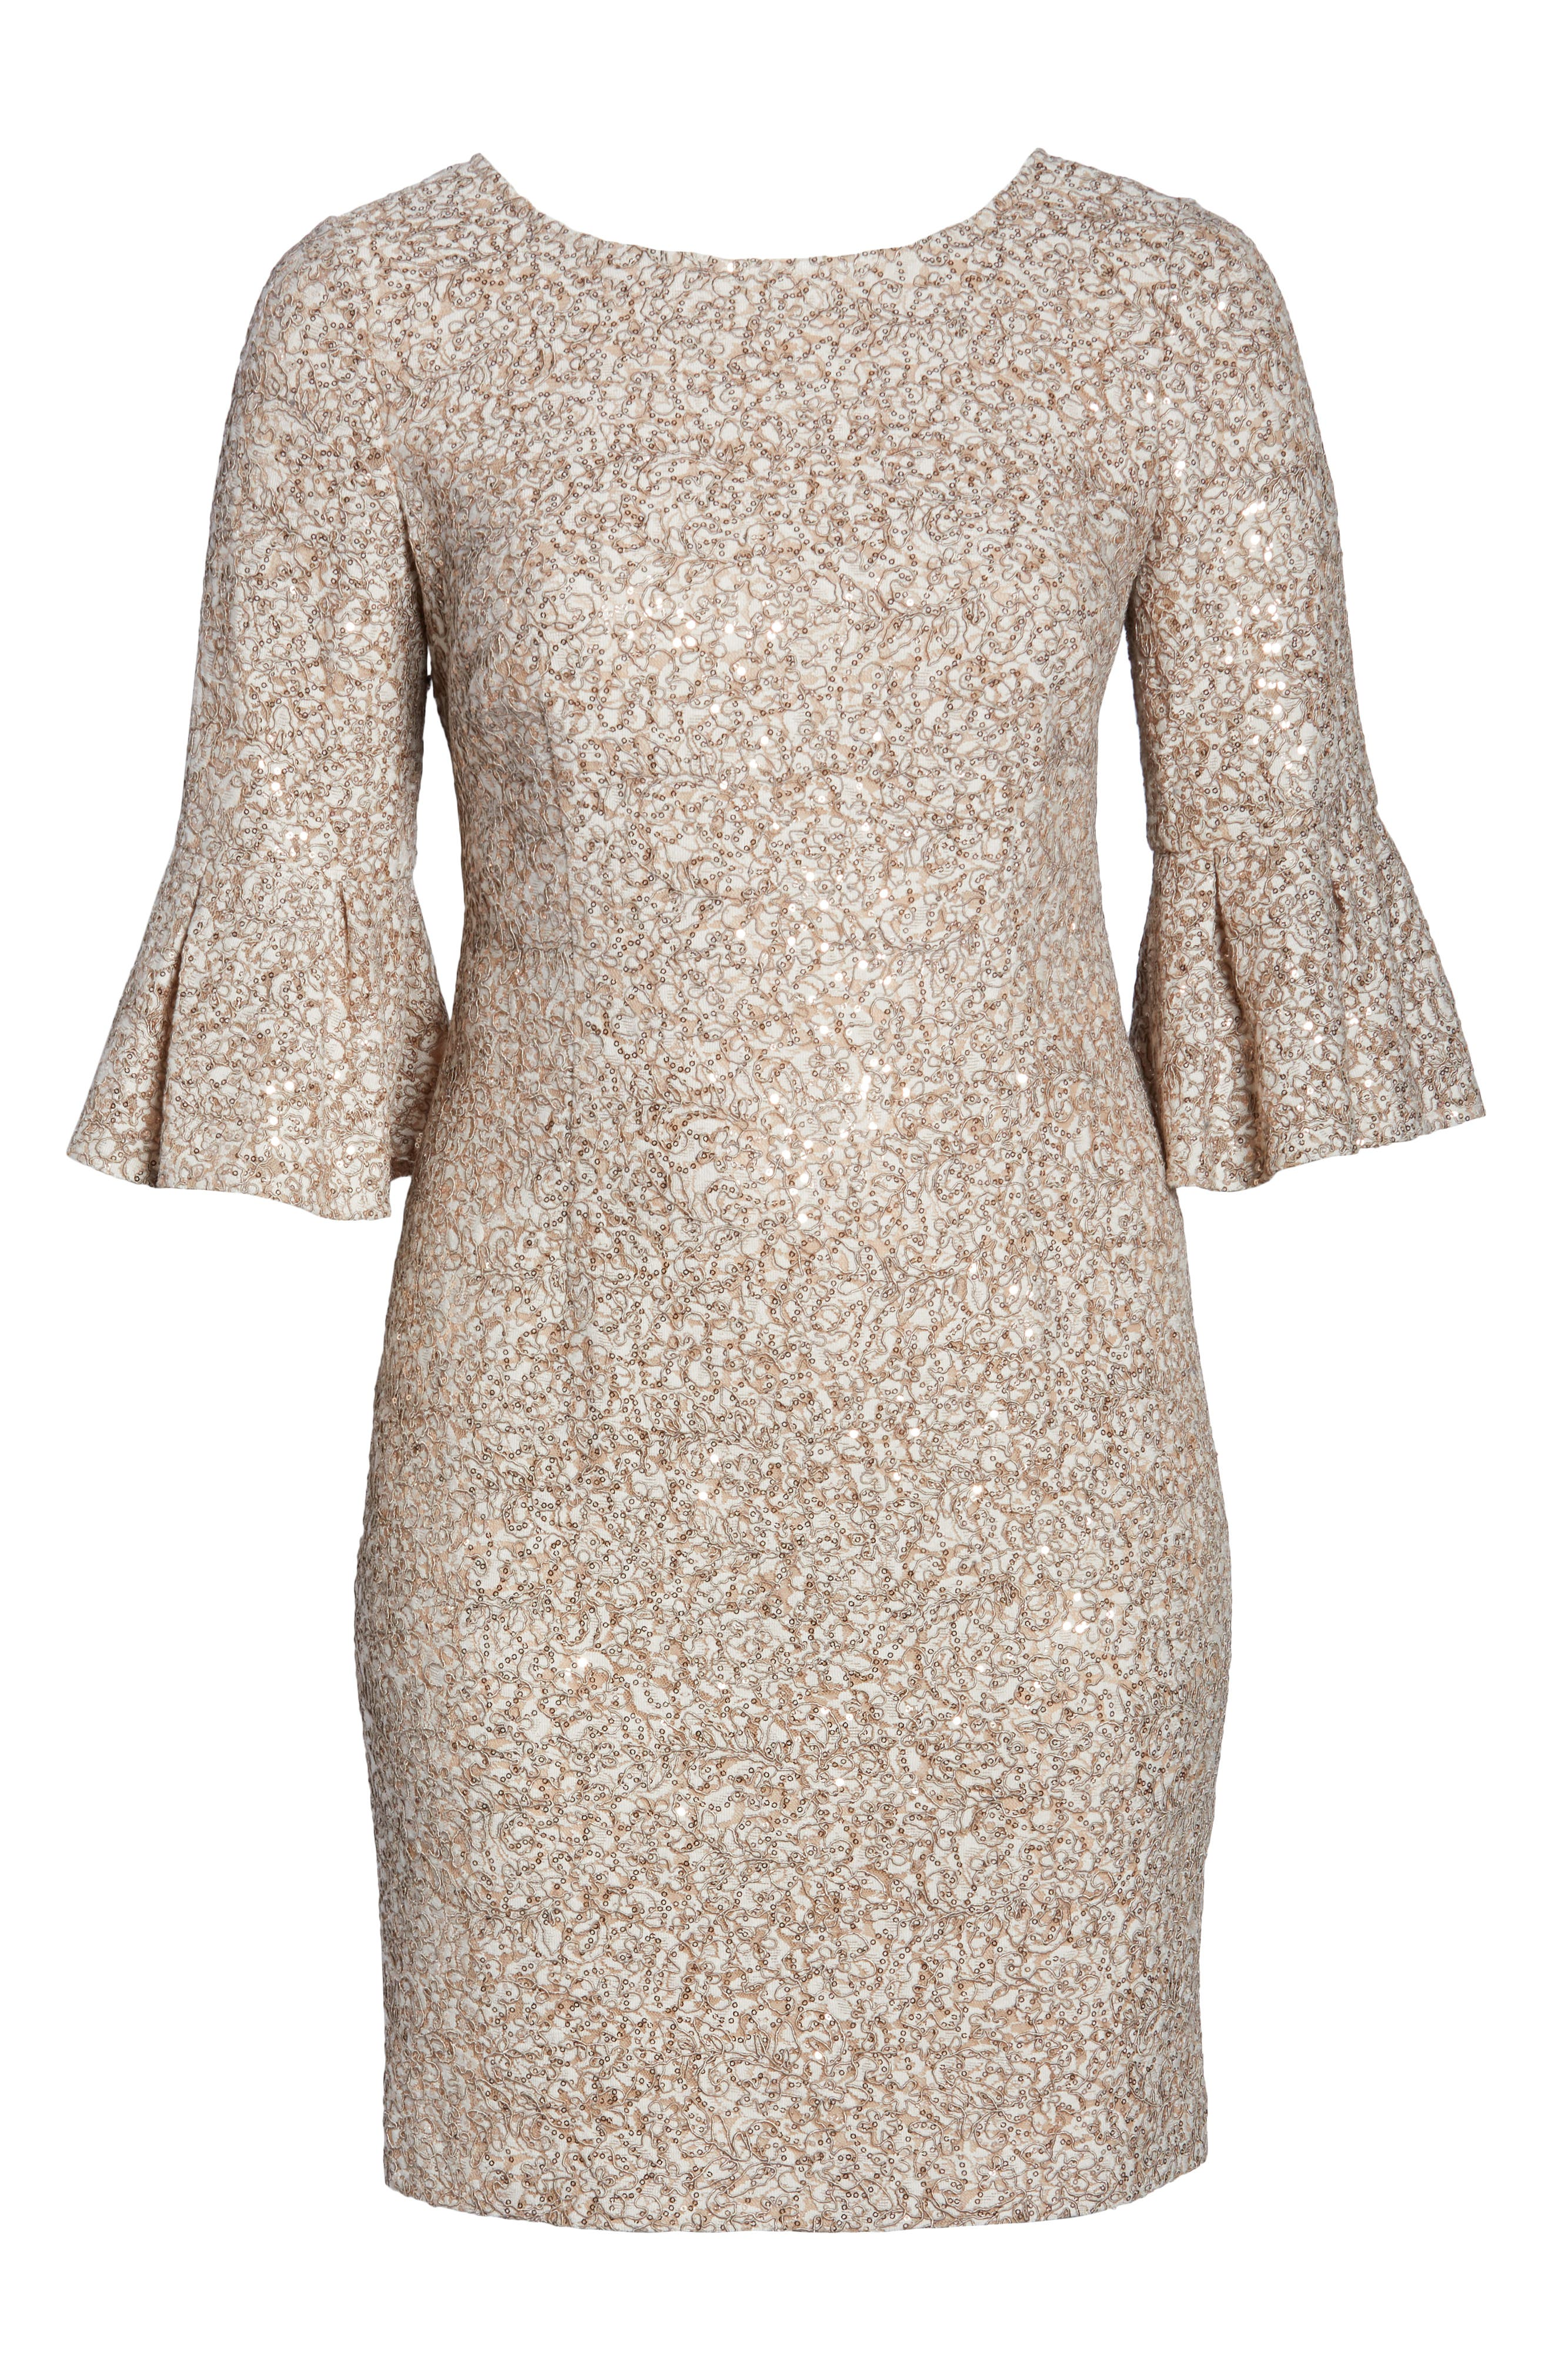 Embroidered Lace Shift Dress,                             Alternate thumbnail 6, color,                             020